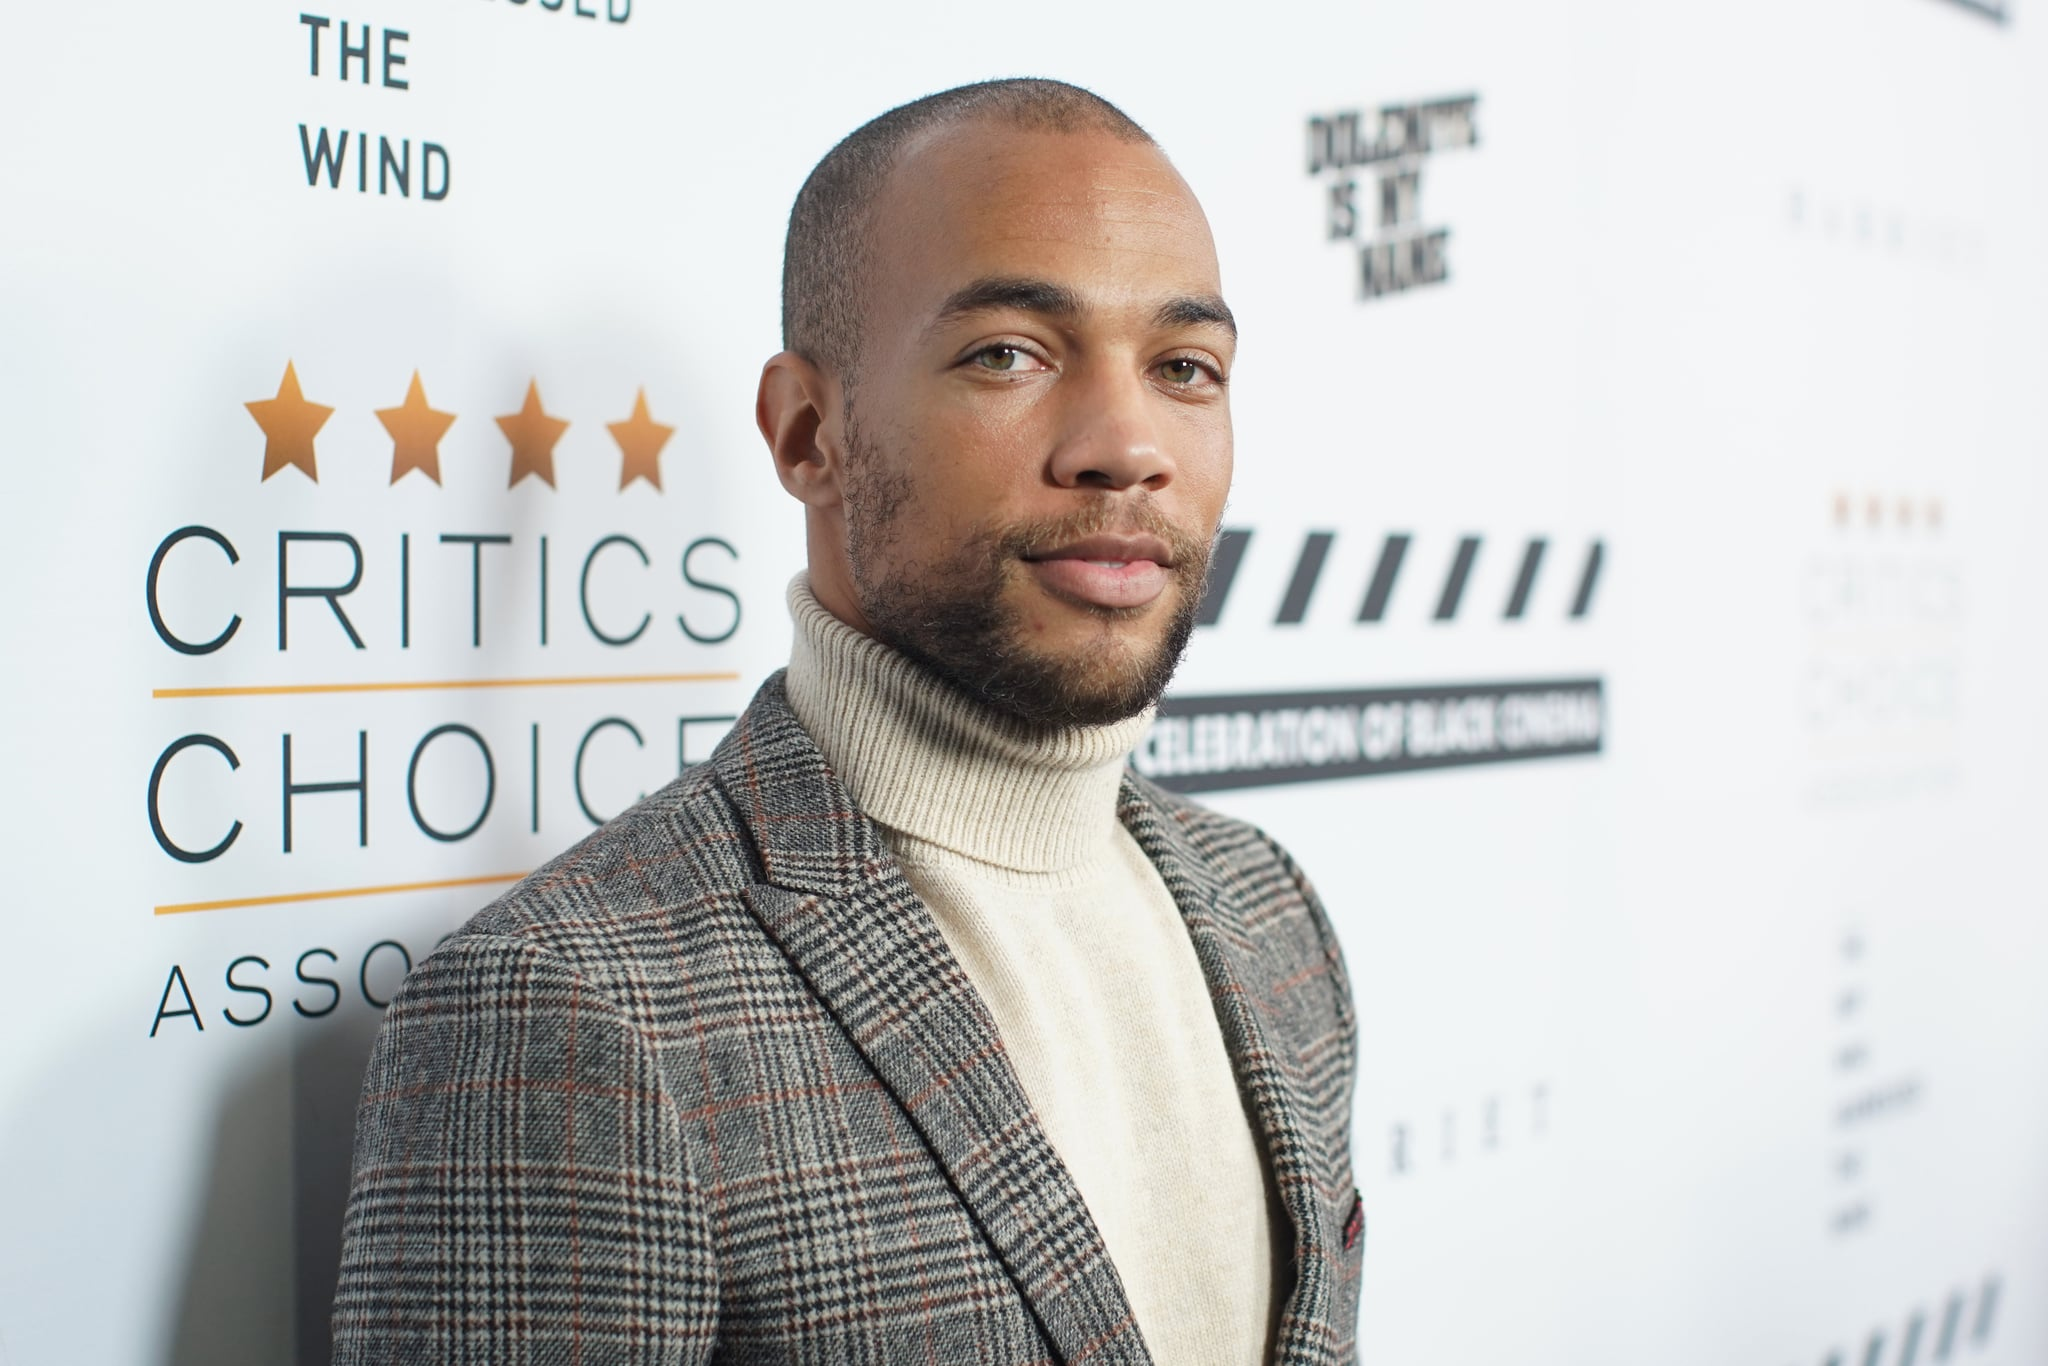 LOS ANGELES, CALIFORNIA - DECEMBER 02: Kendrick Sampson attends the Celebration of Black Cinema at Landmark Annex on December 02, 2019 in Los Angeles, California. (Photo by Randy Shropshire/Getty Images for the Celebration of Black Cinema)